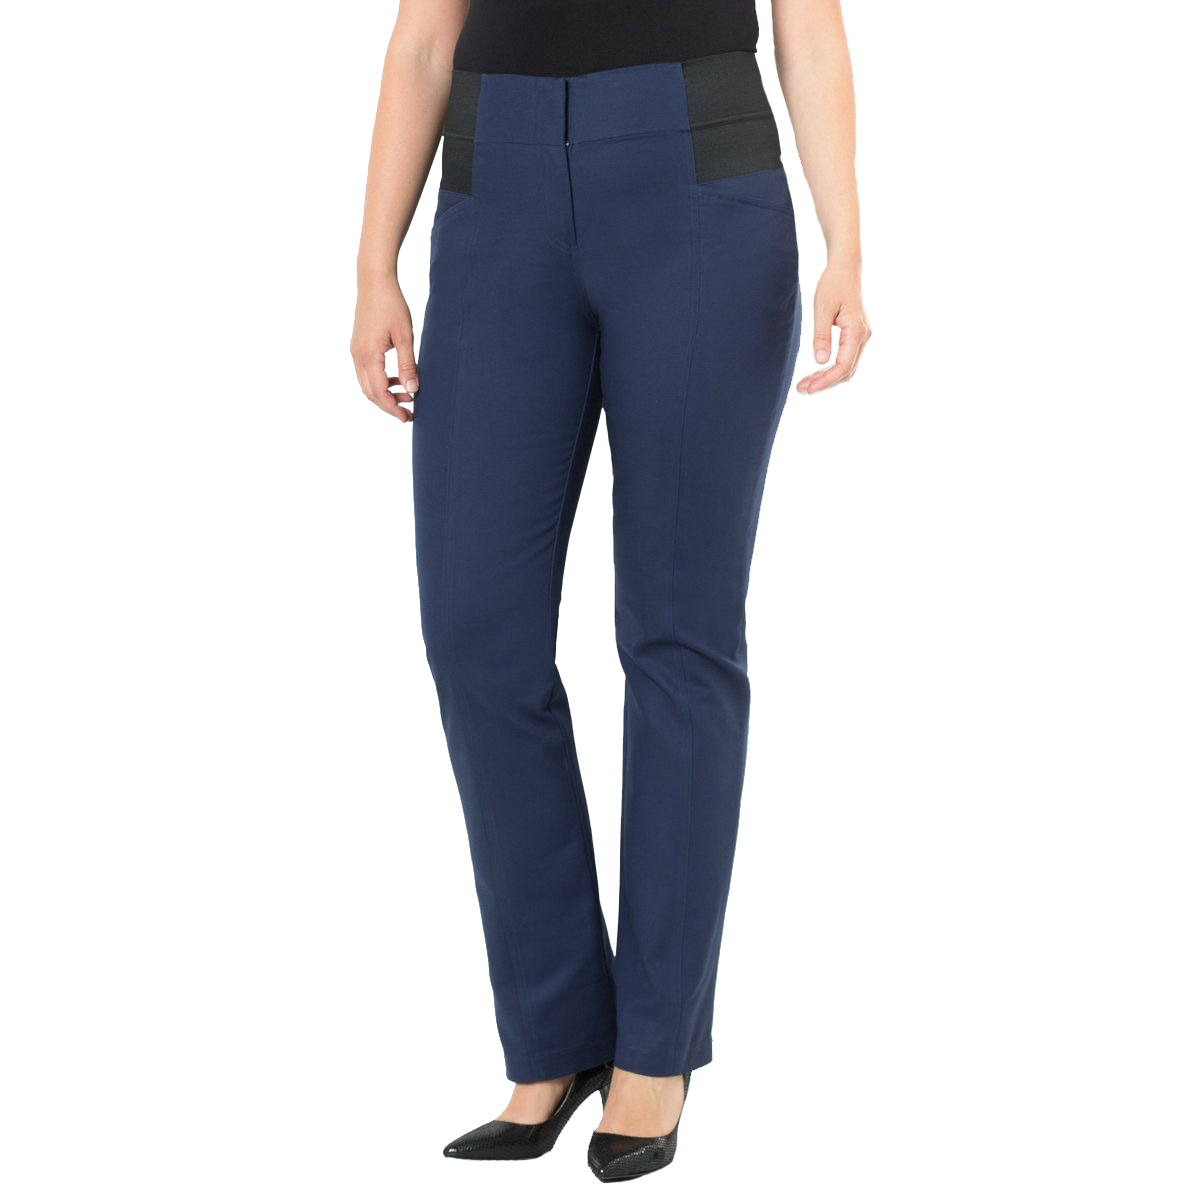 Castaluna damen High Waist Straight Trousers Length 30.5 324382947